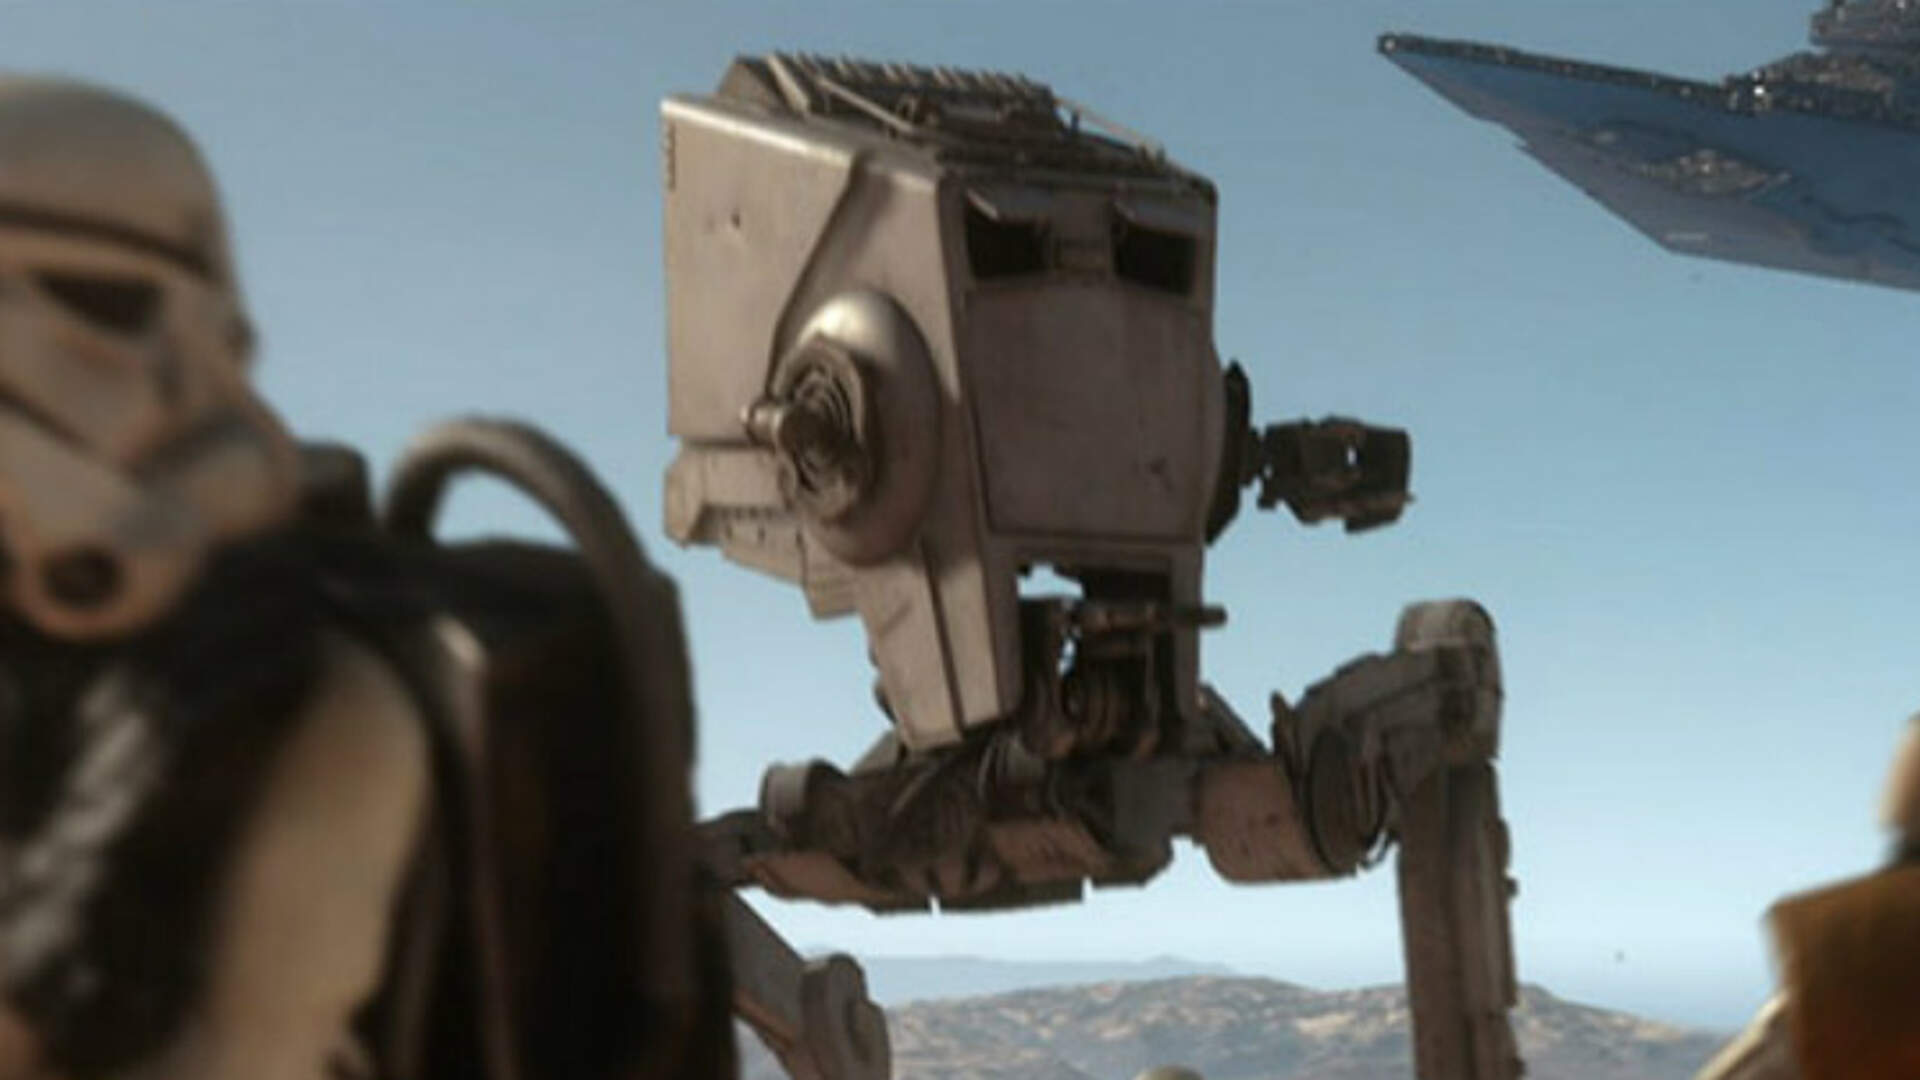 Star Wars Battlefront's PC Specs Want Your Very Best